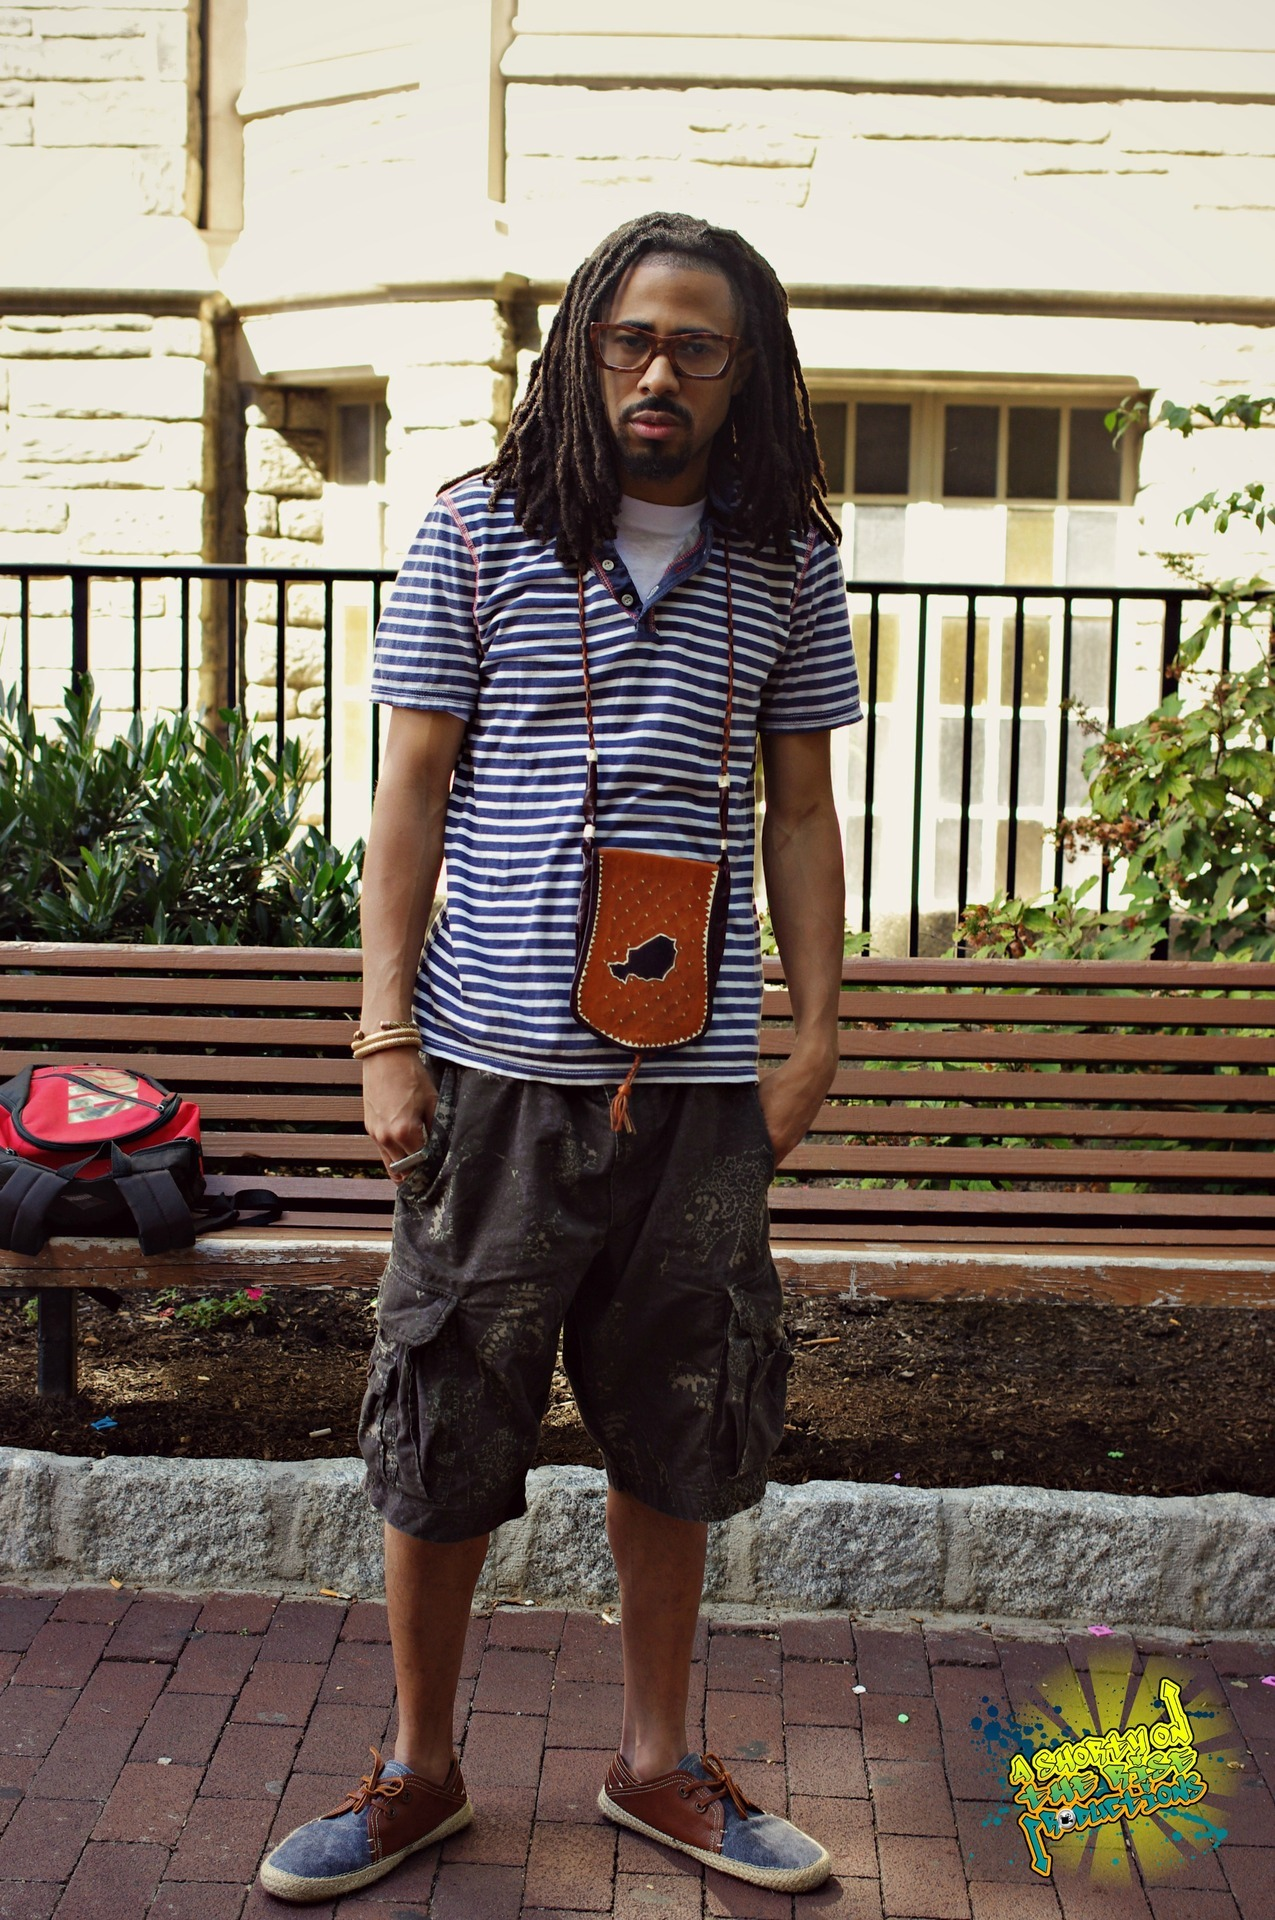 blackfashion:  Kulu 30 Philadelphia PA Submitted By: http://menwithlocs.com Photographed by: http://ashortyontherise.tumblr.com